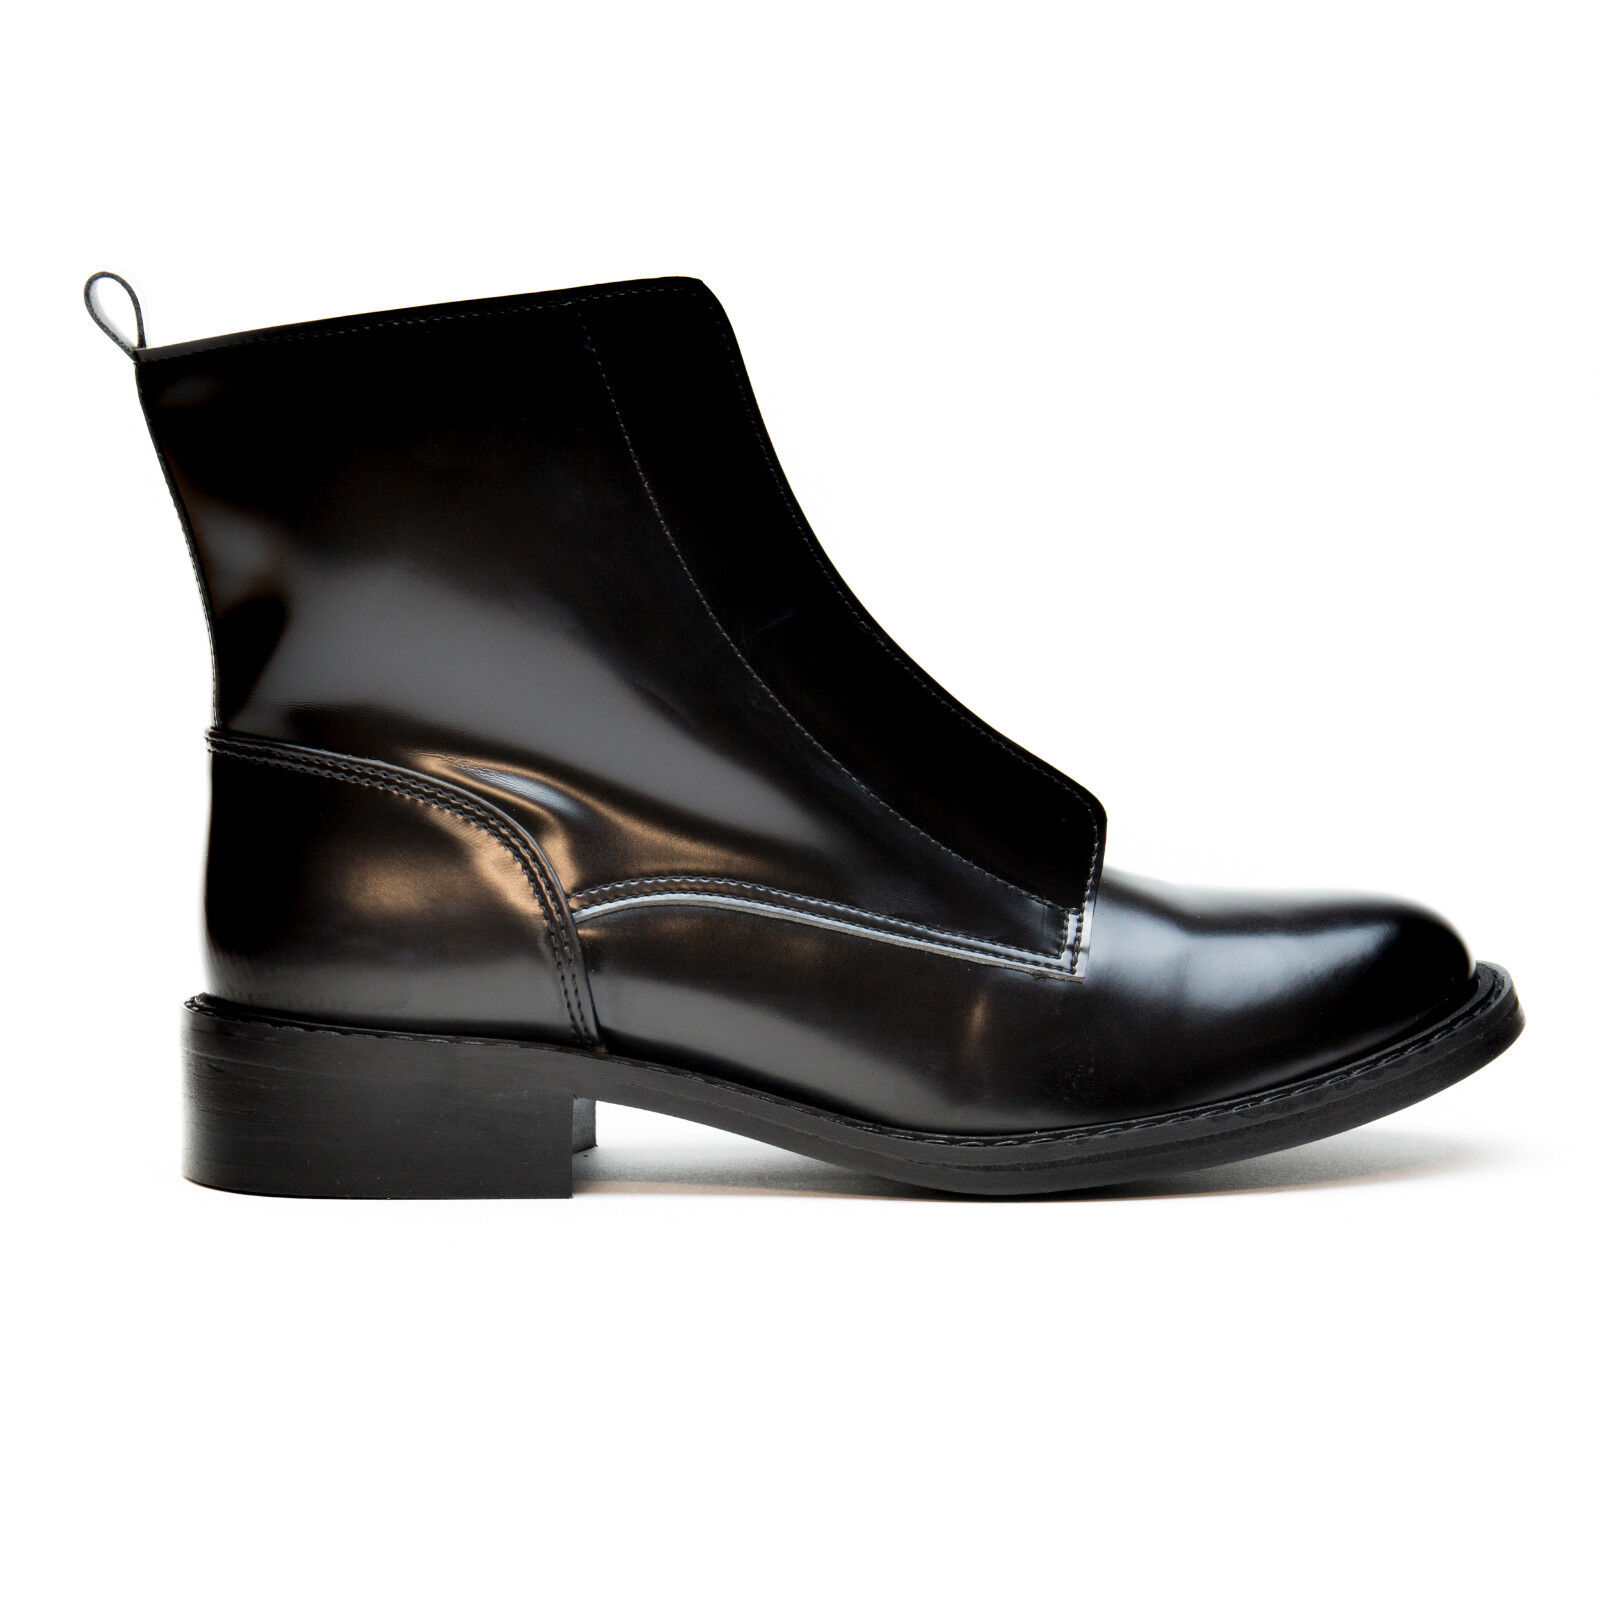 Nae - Zipme vegan ankle boots made on ecological microfiber